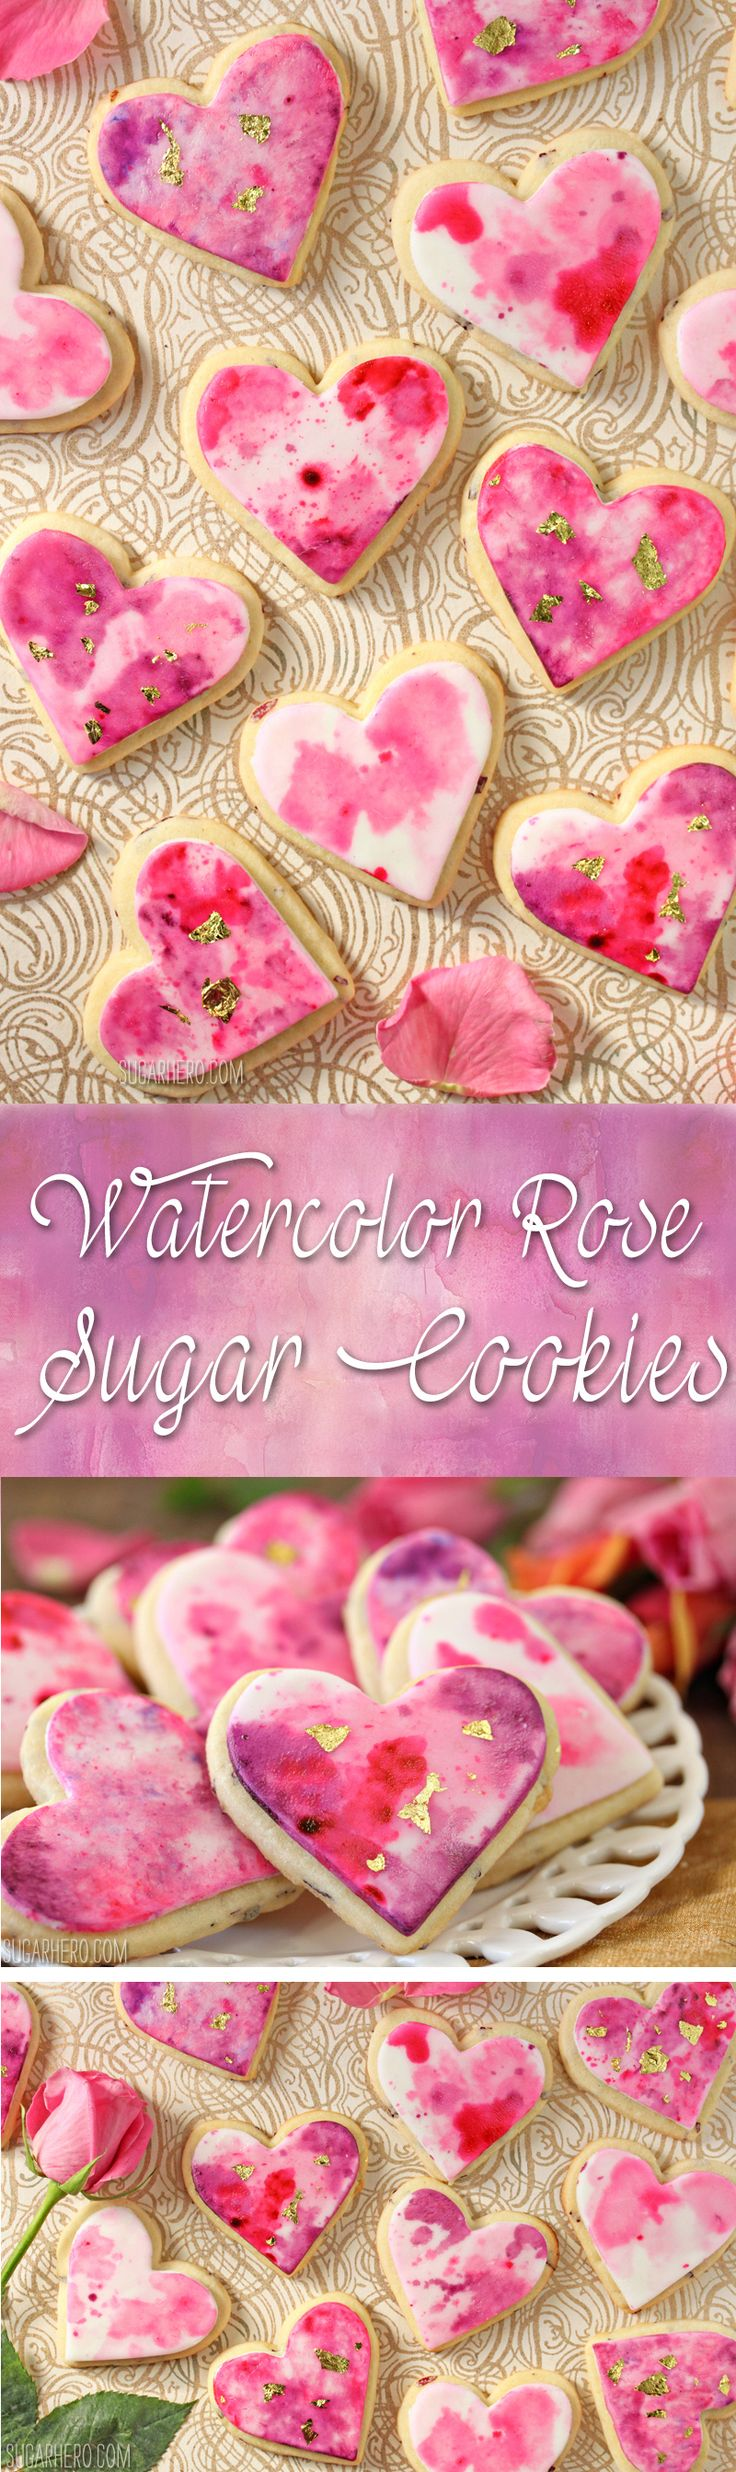 These cookies would be a fun idea for Valentine's Day.  Watercolor Rose Sugar Cookies | From SugarHero.com